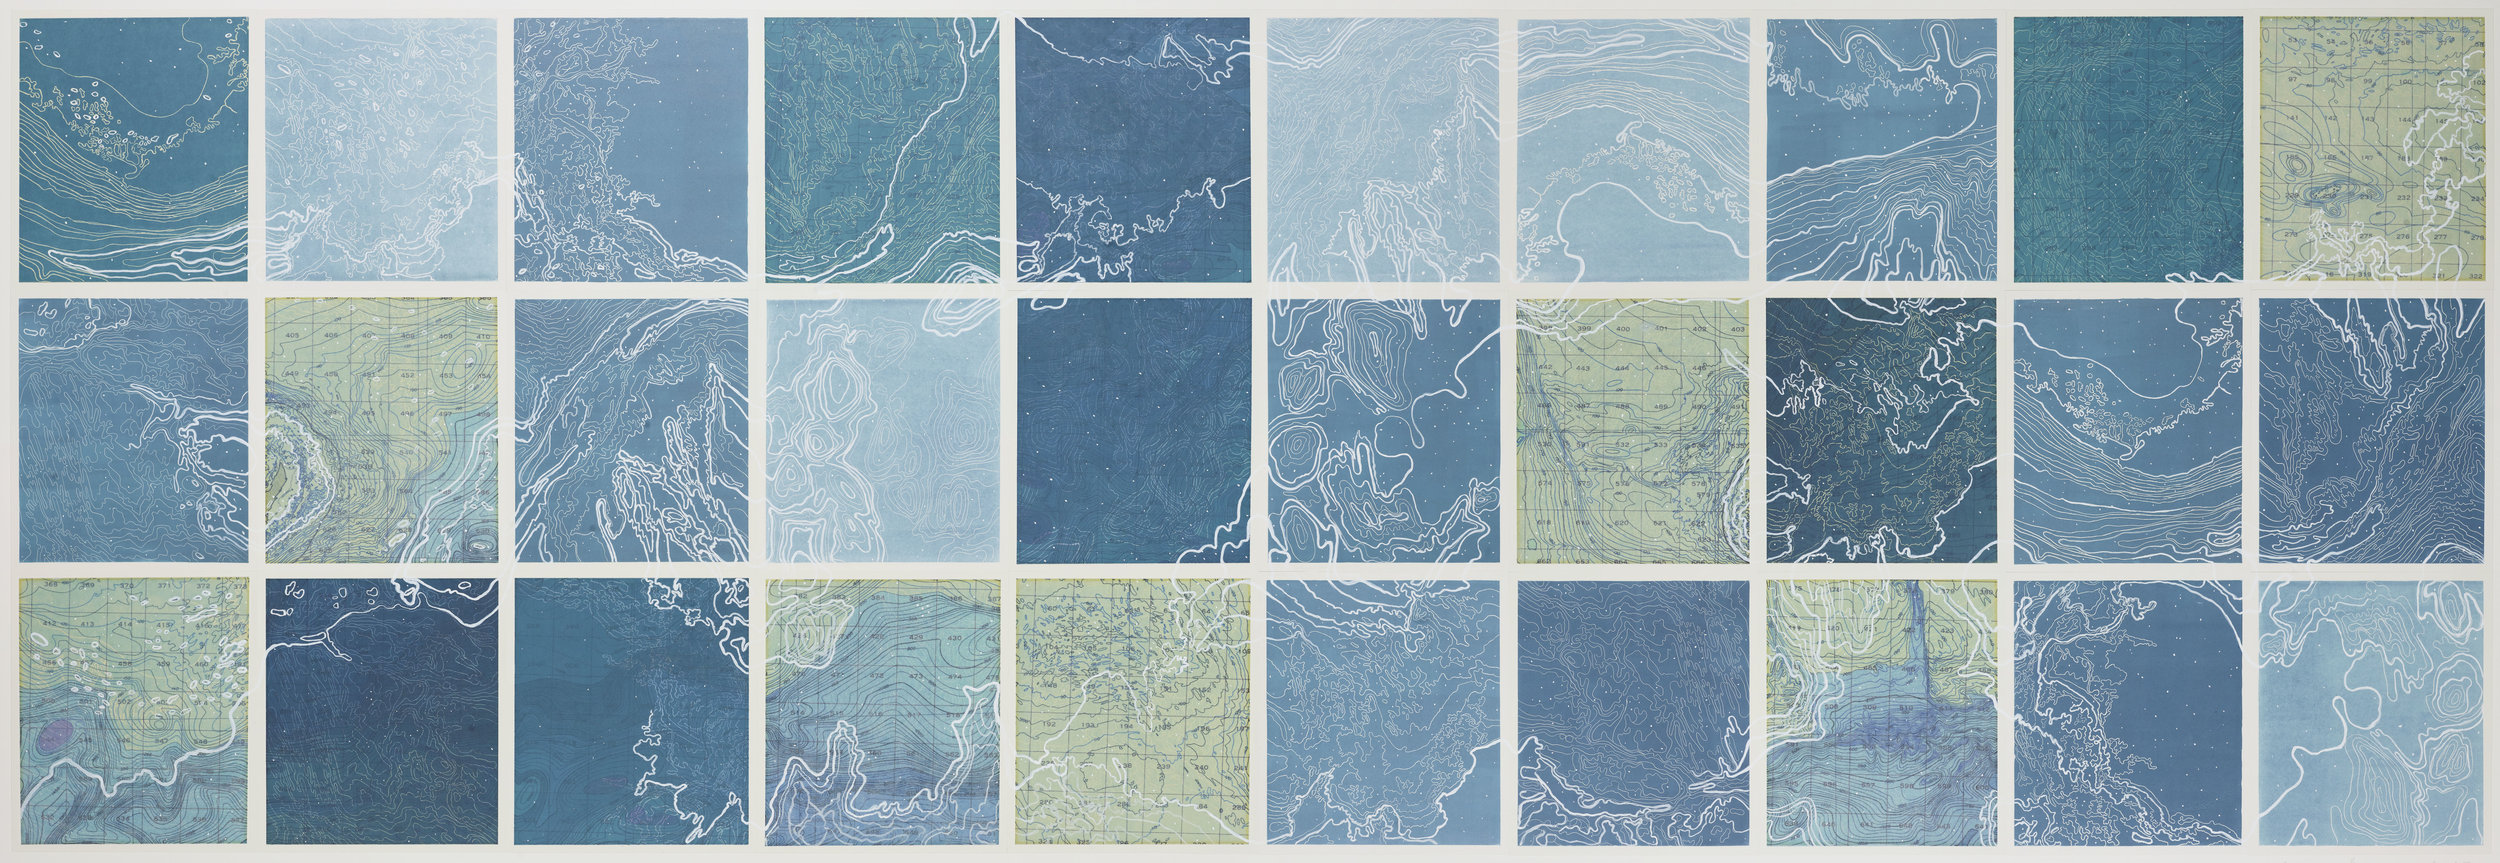 """Hyperborean Sea,2 017  Line etching, relief roll, ghost print, digital map on kozo-shi, paint 40"""" X 115"""""""